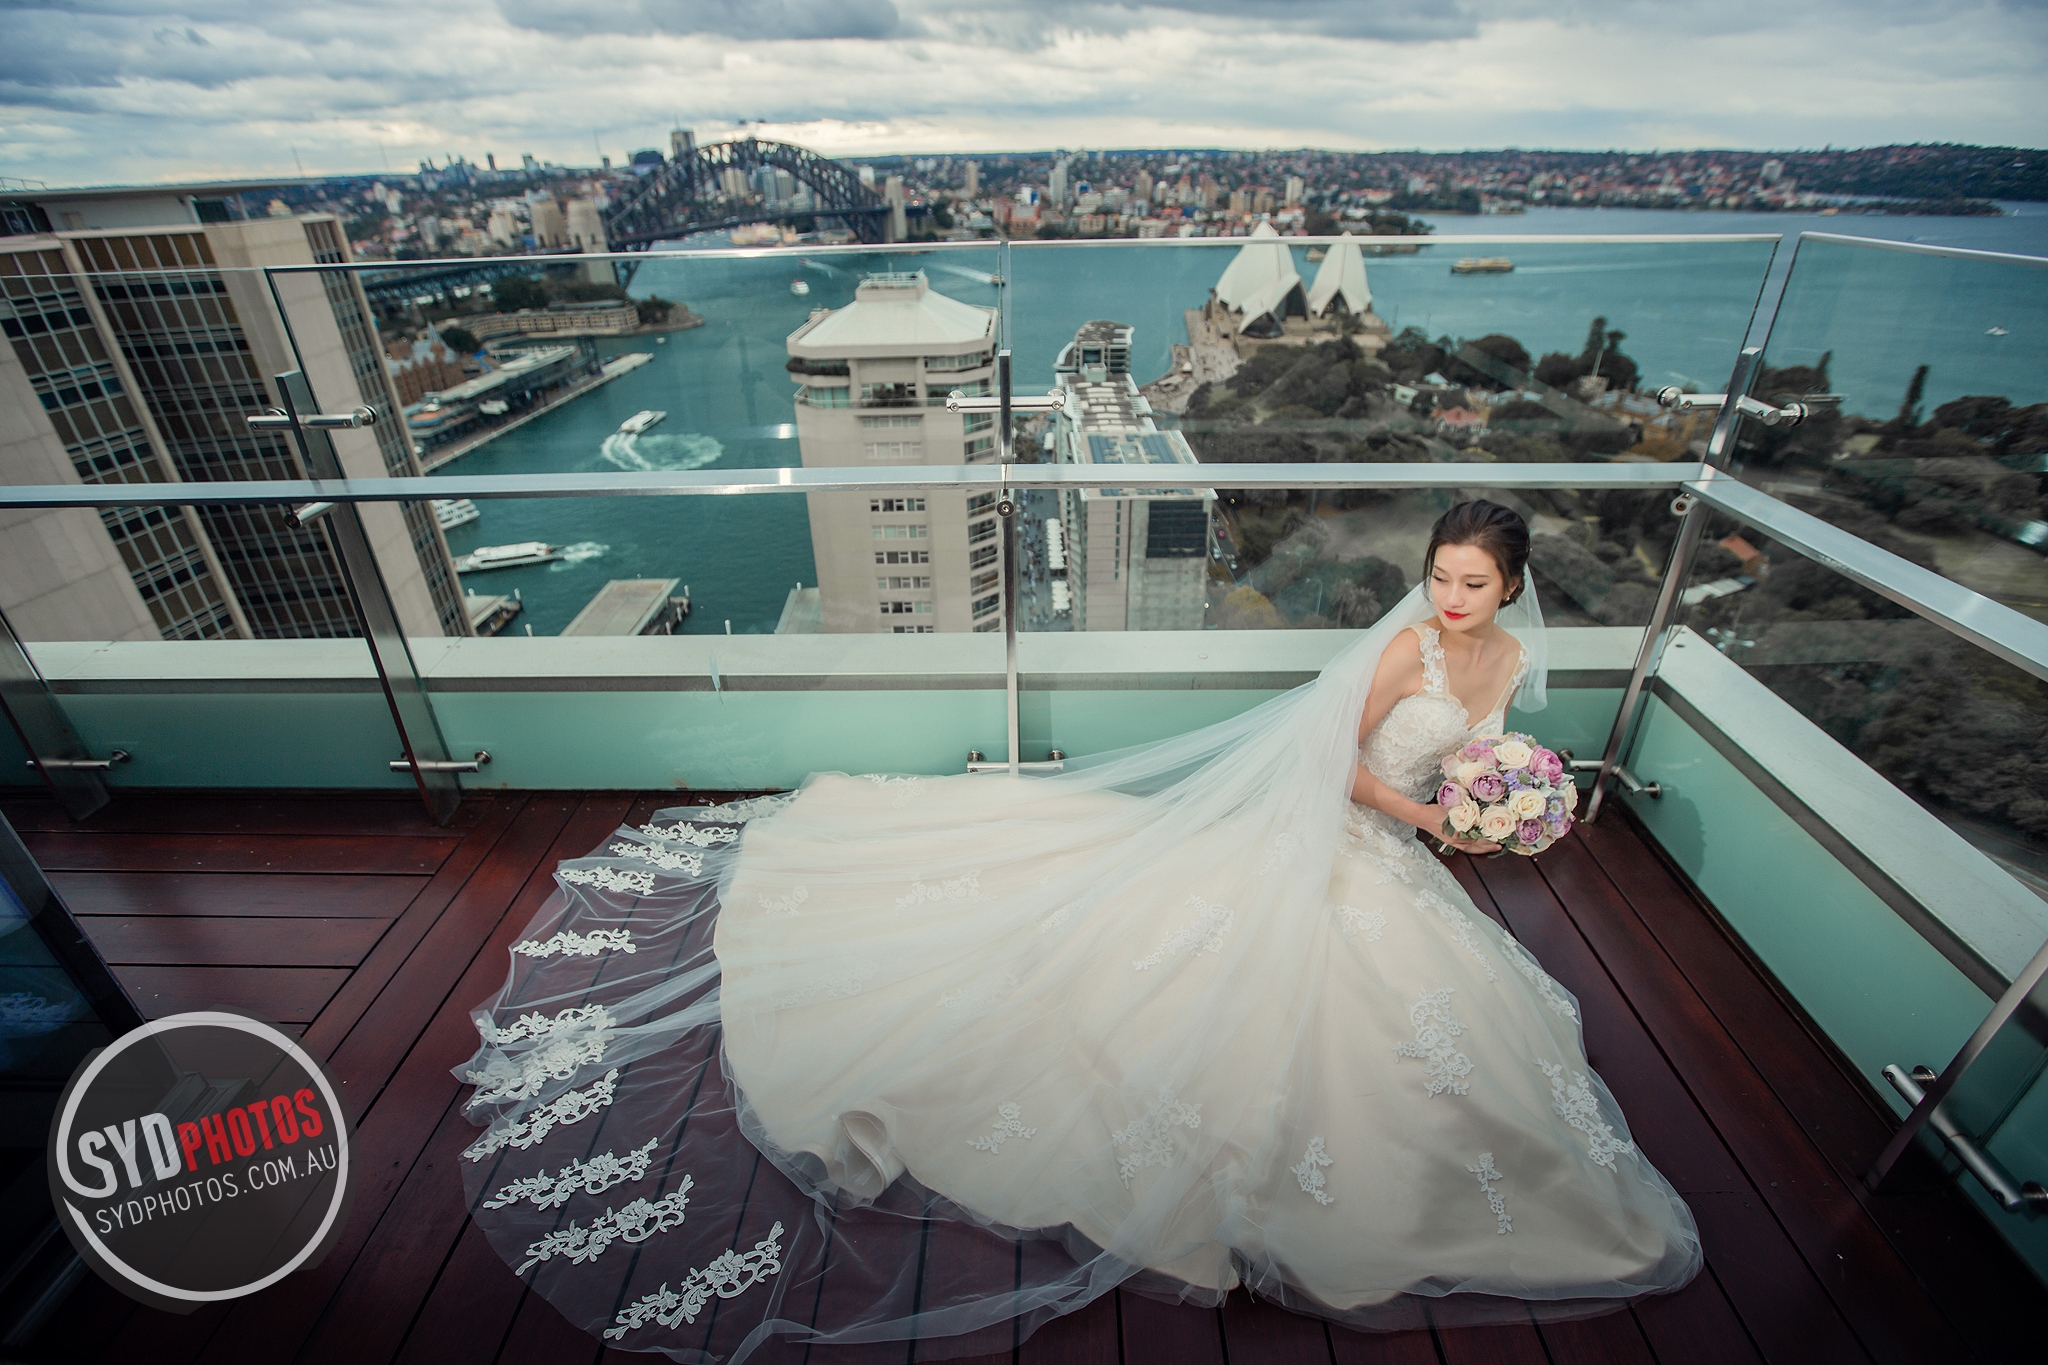 ID-876363-20180512-789.jpg, By Photographer Sydphotos.wedding, Created on 11 Sep 2018, SYDPHOTOS Photography all rights reserved.